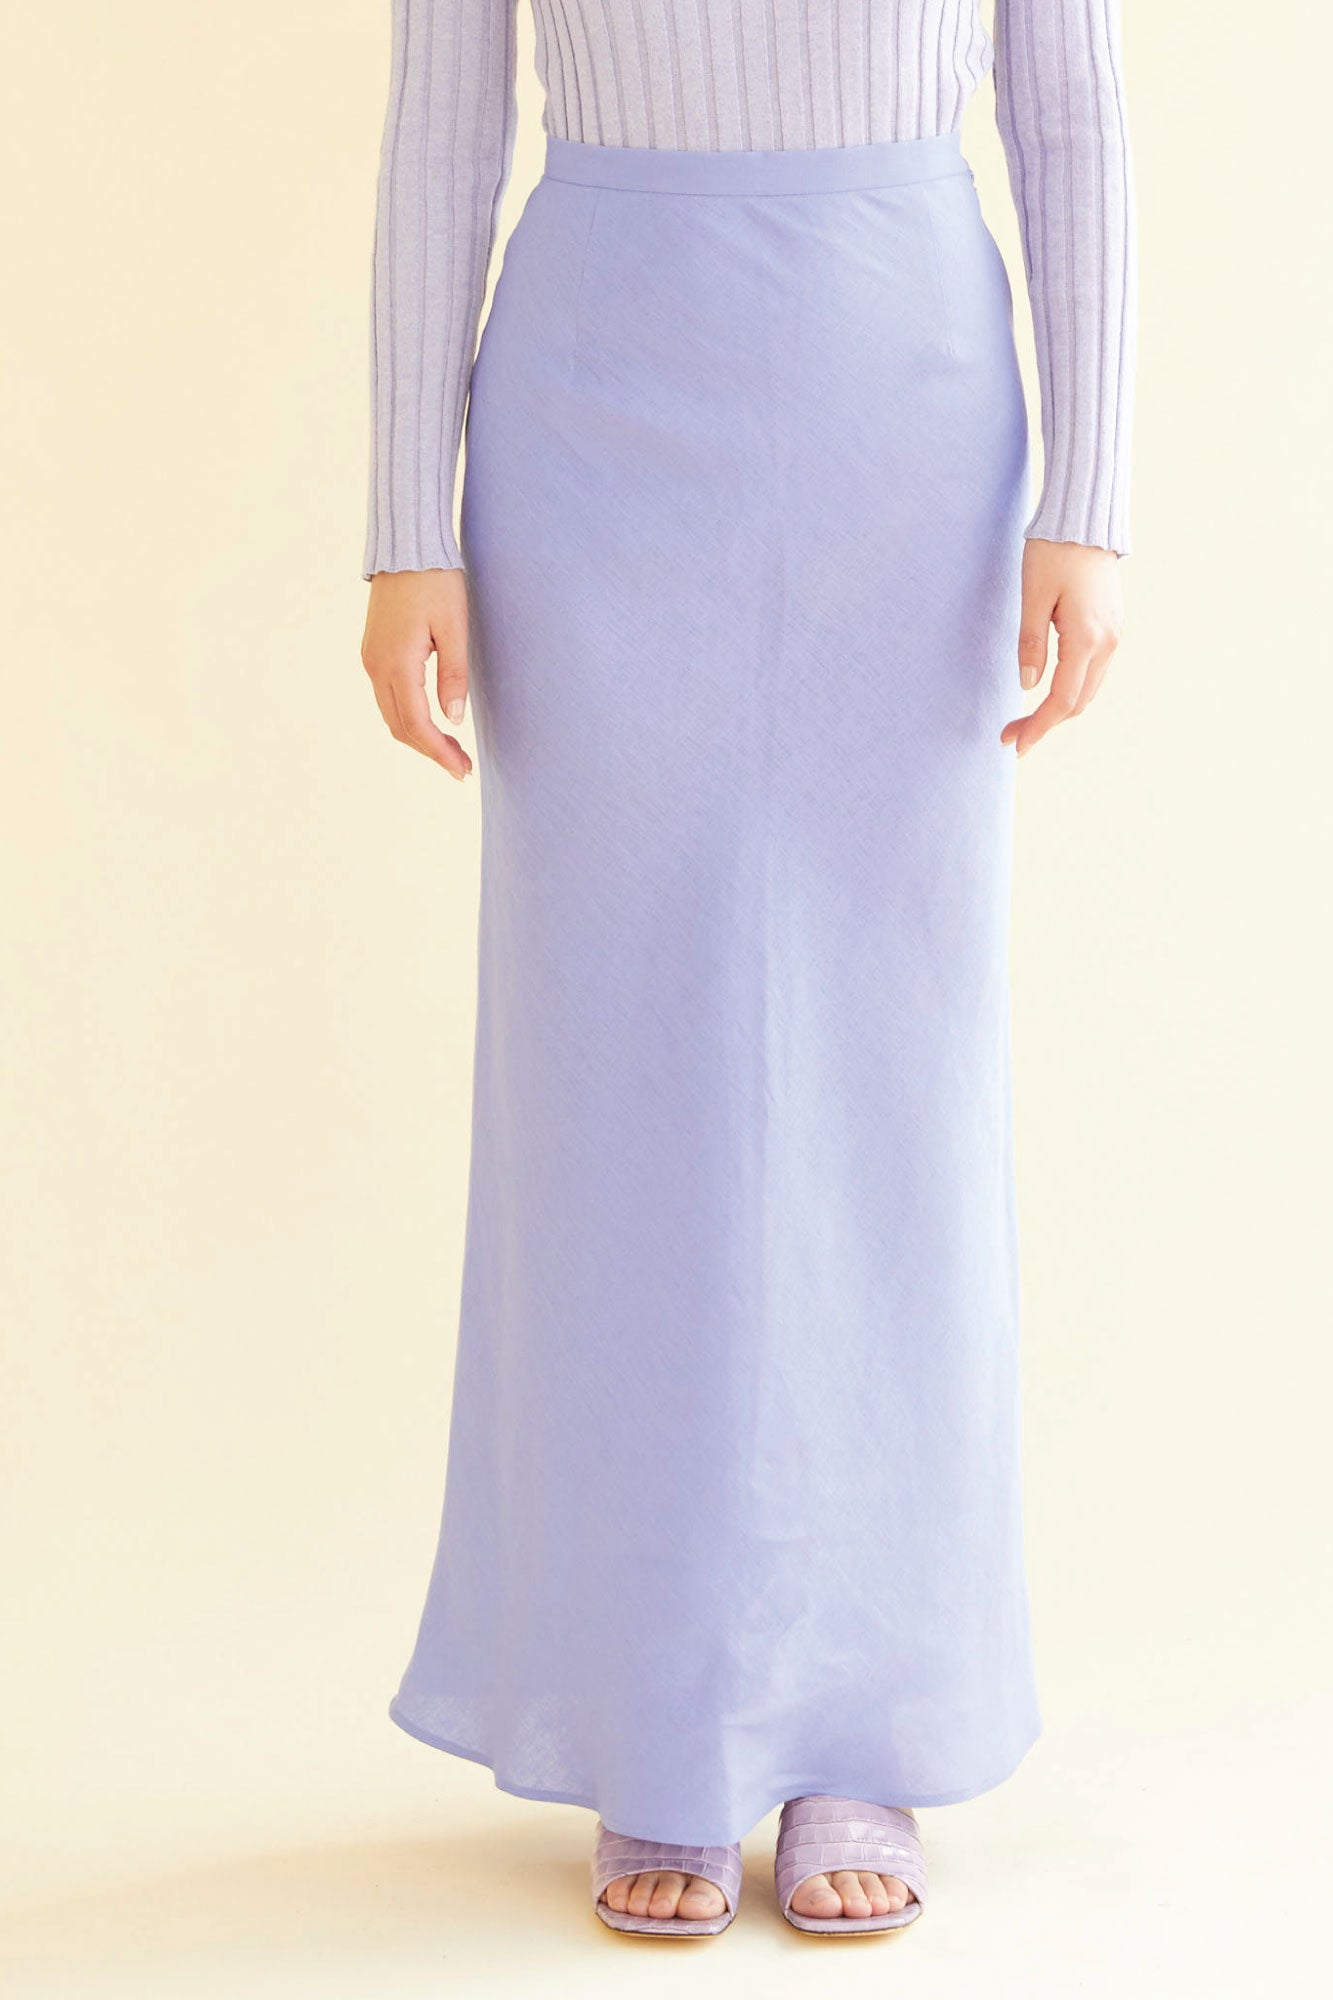 Lady Killer Skirt in Periwinkle - hej hej